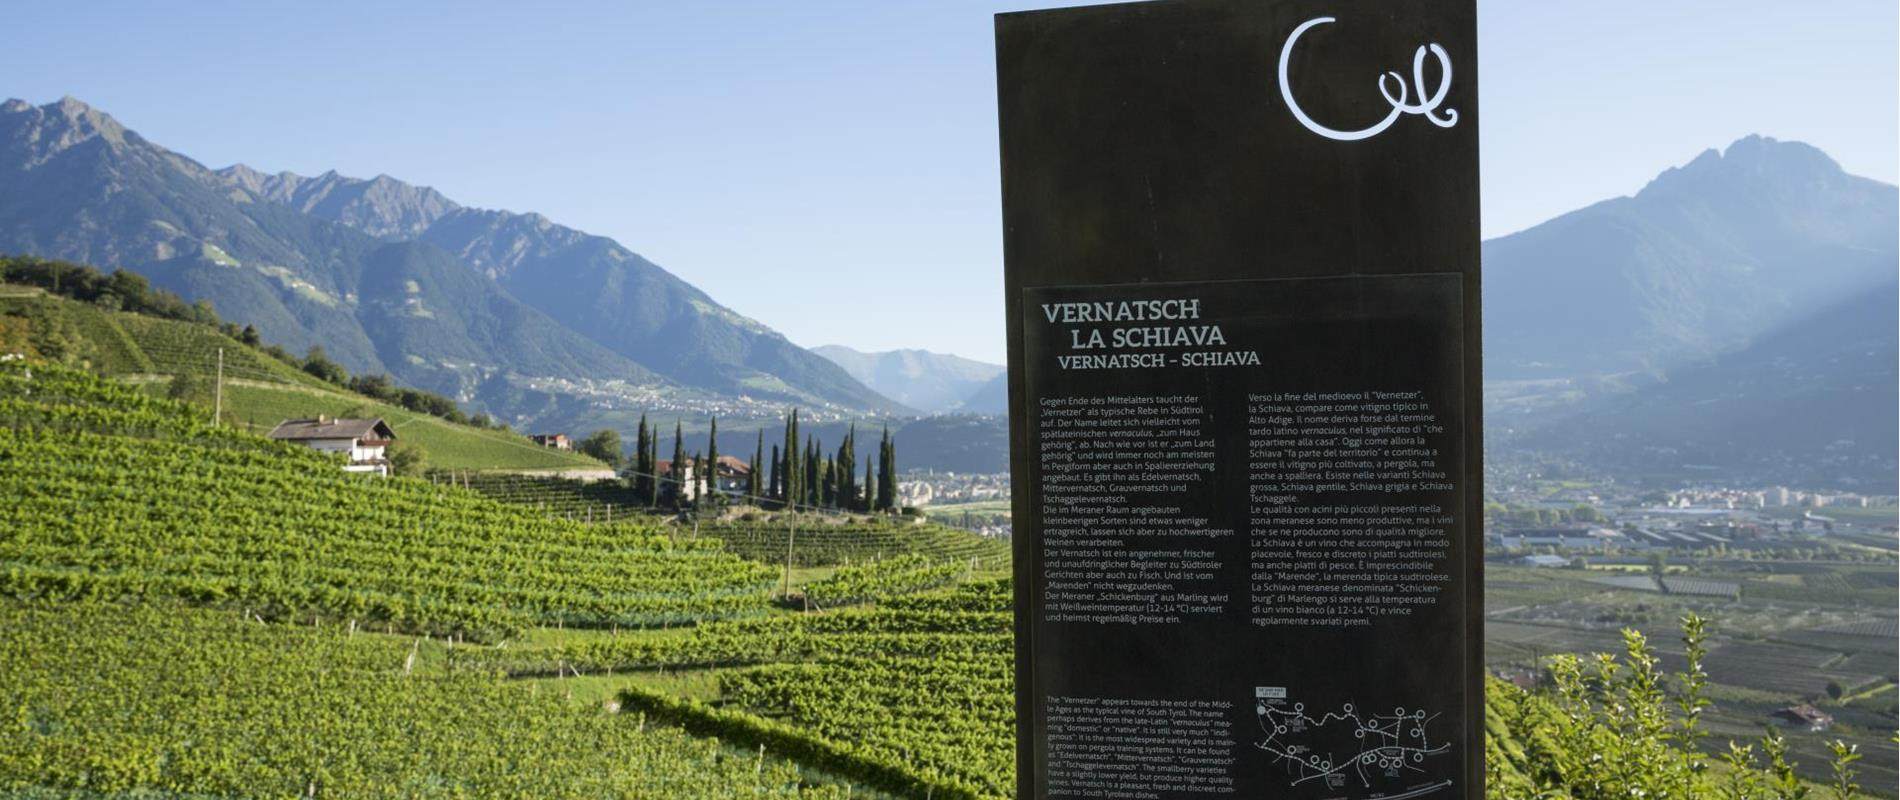 The WineCulturePath offers an panoramic view